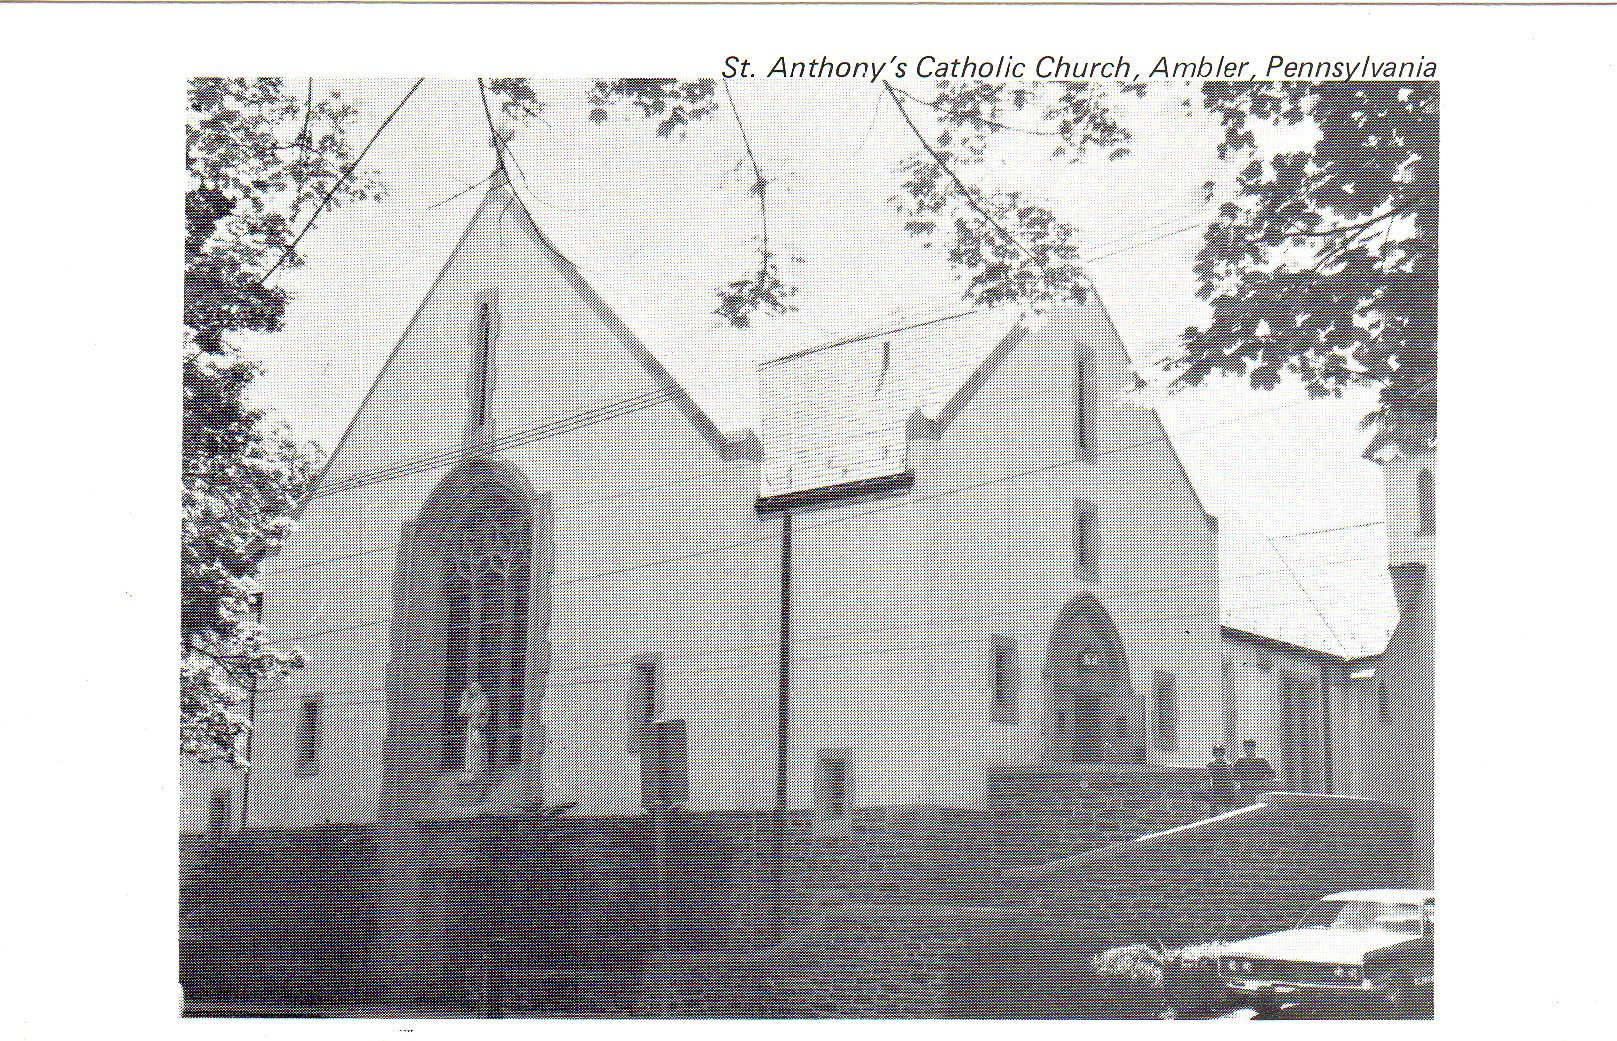 Post Card Collection (E Simon)_2682_30_St Anthonys Catholic Church, Ambler, Pa